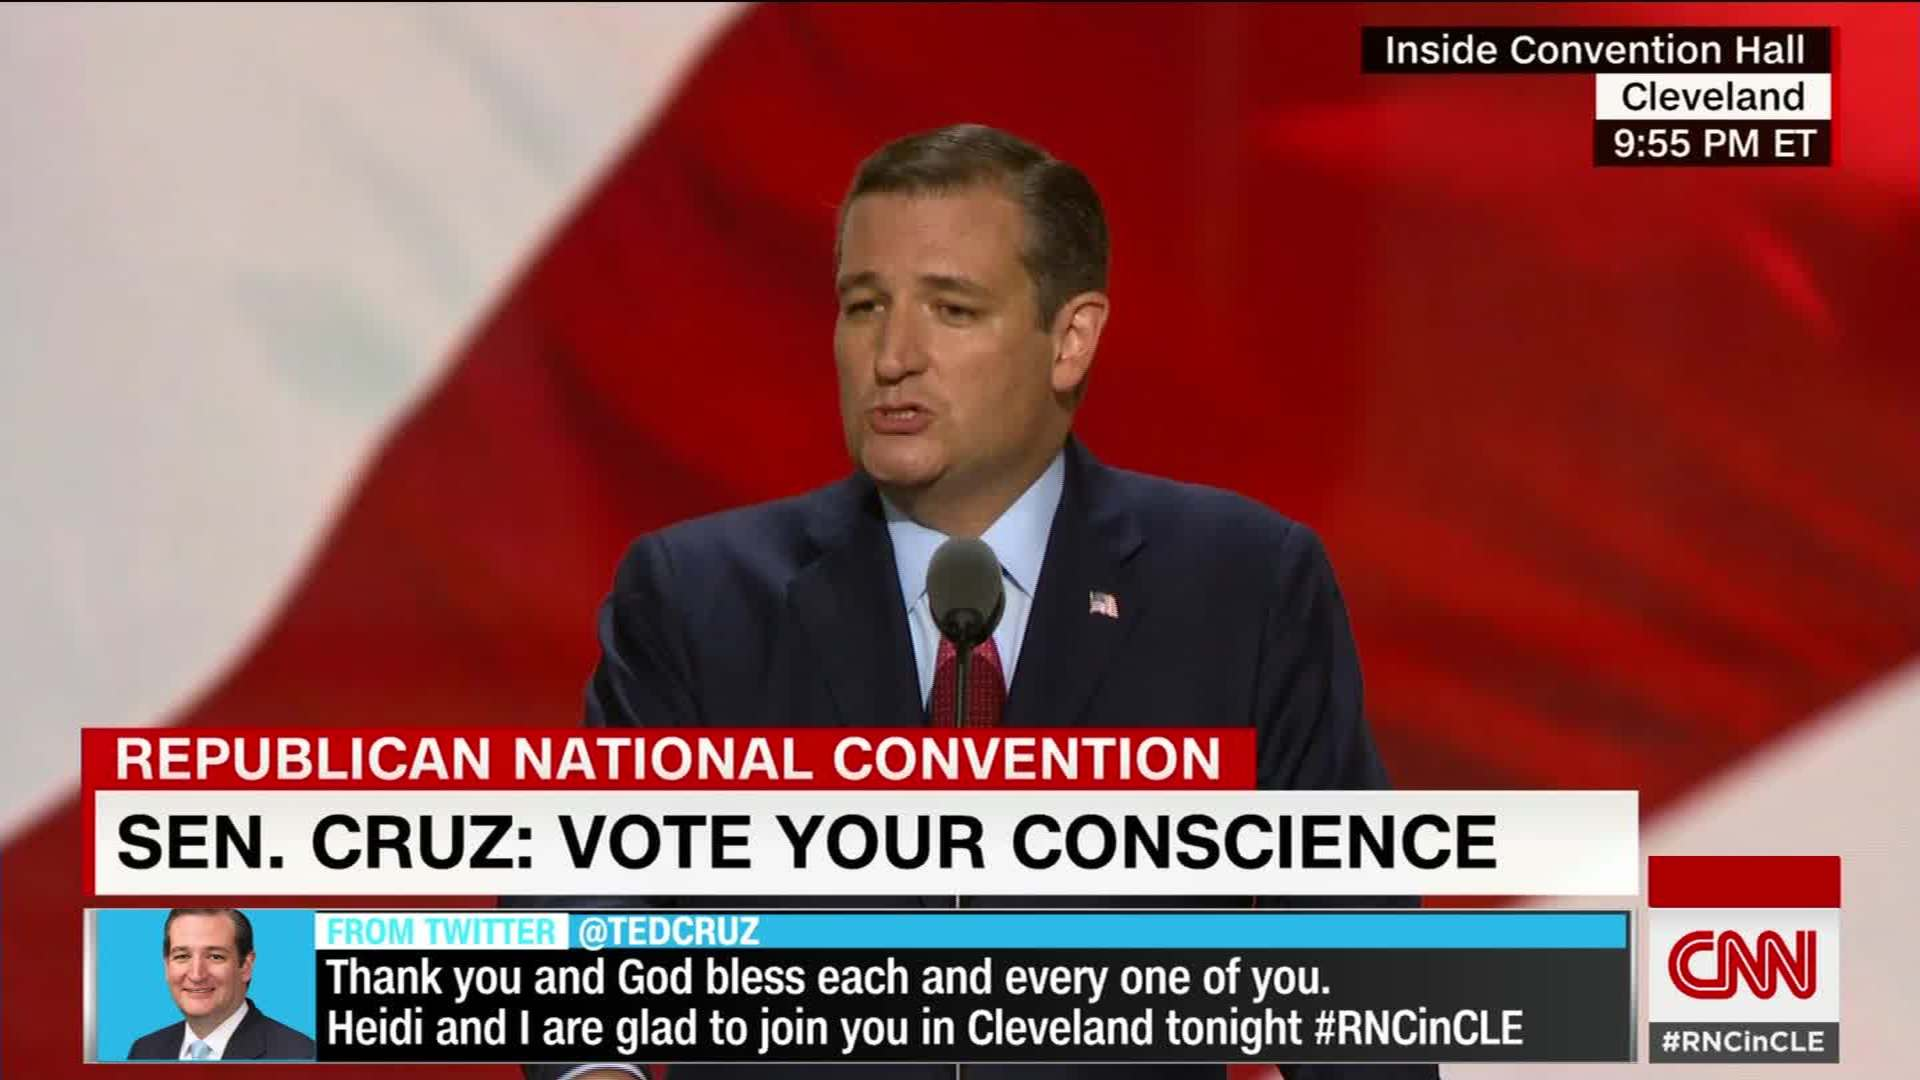 Ted Cruz booed by Republican National Convention crowd - CNN Video